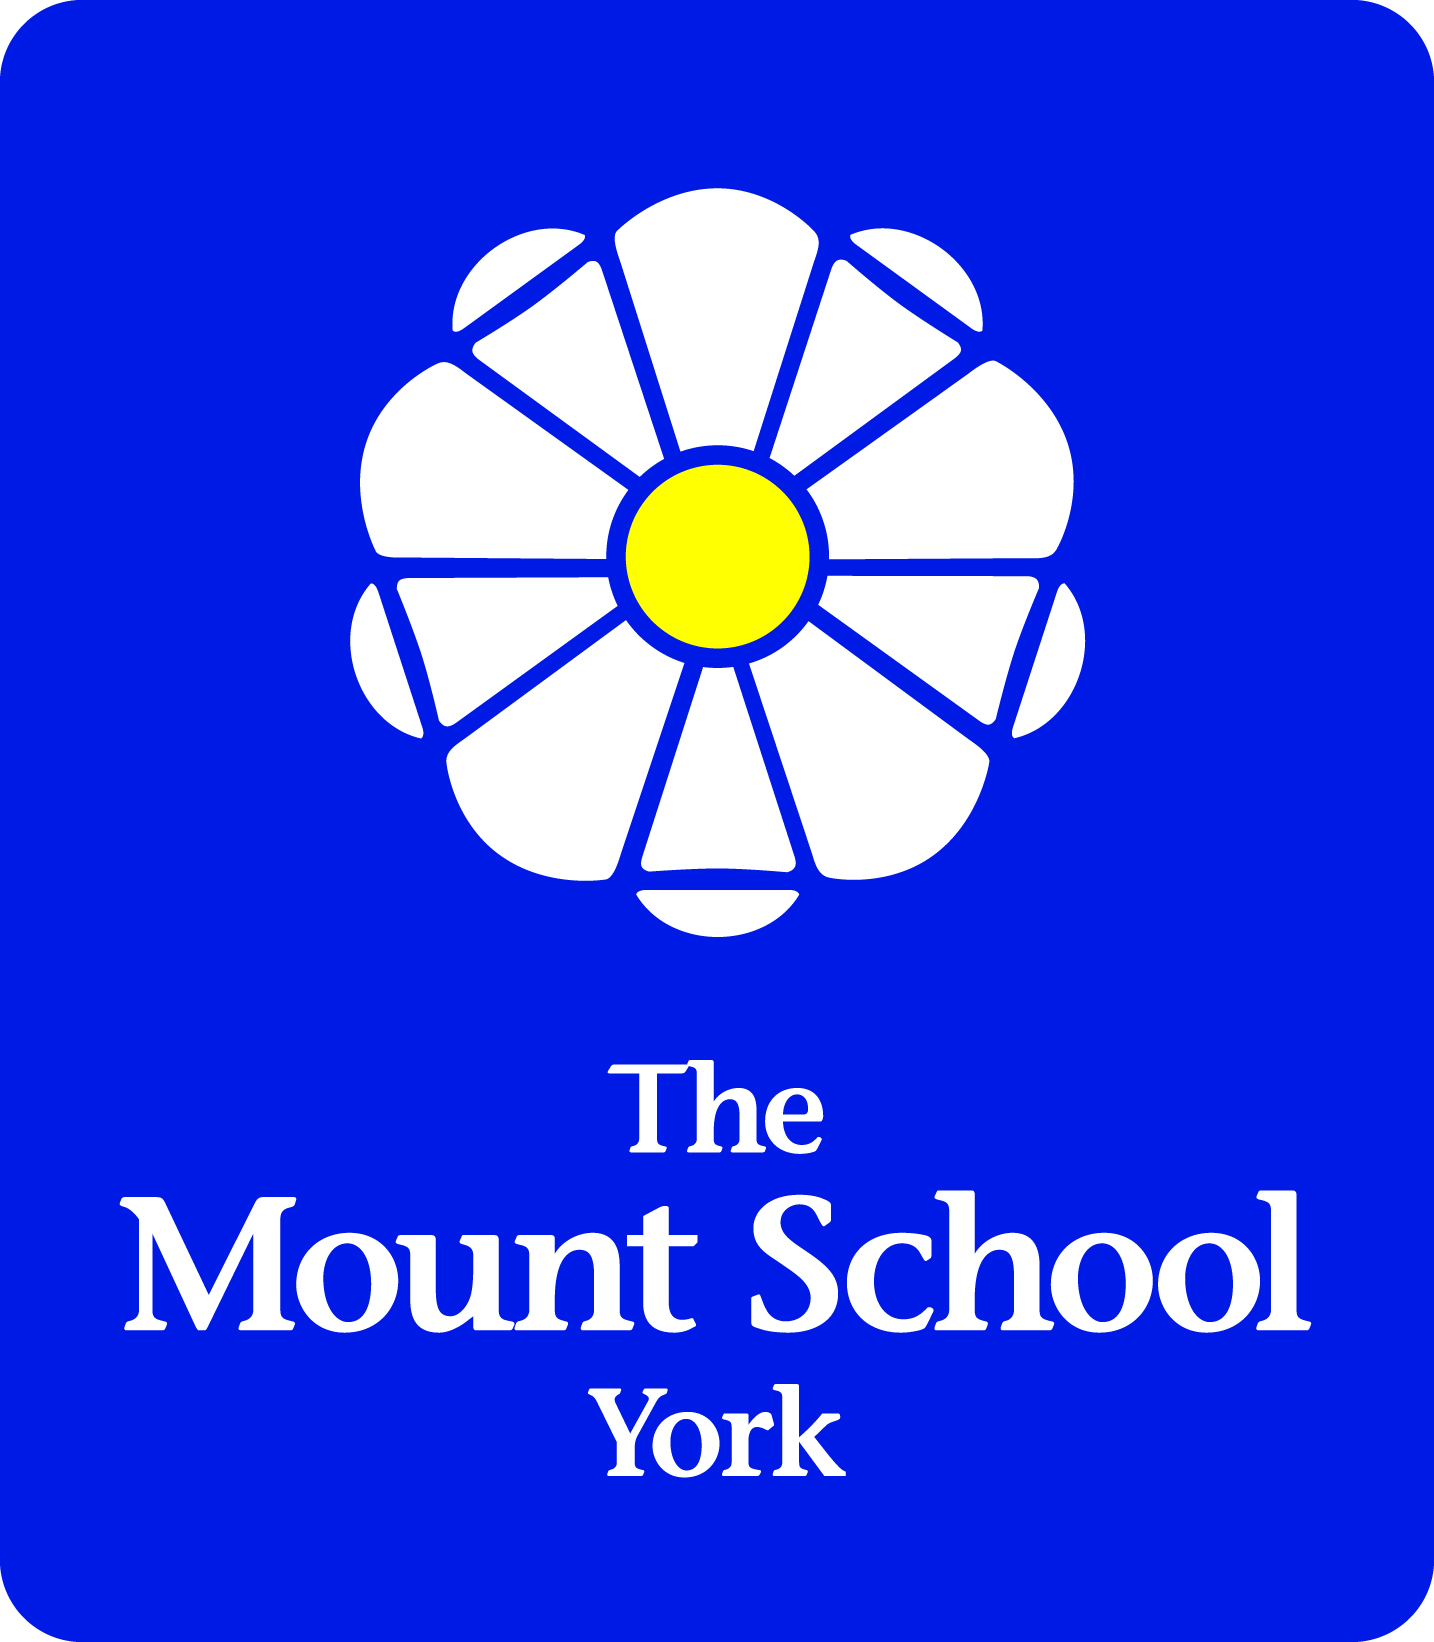 The Mount School